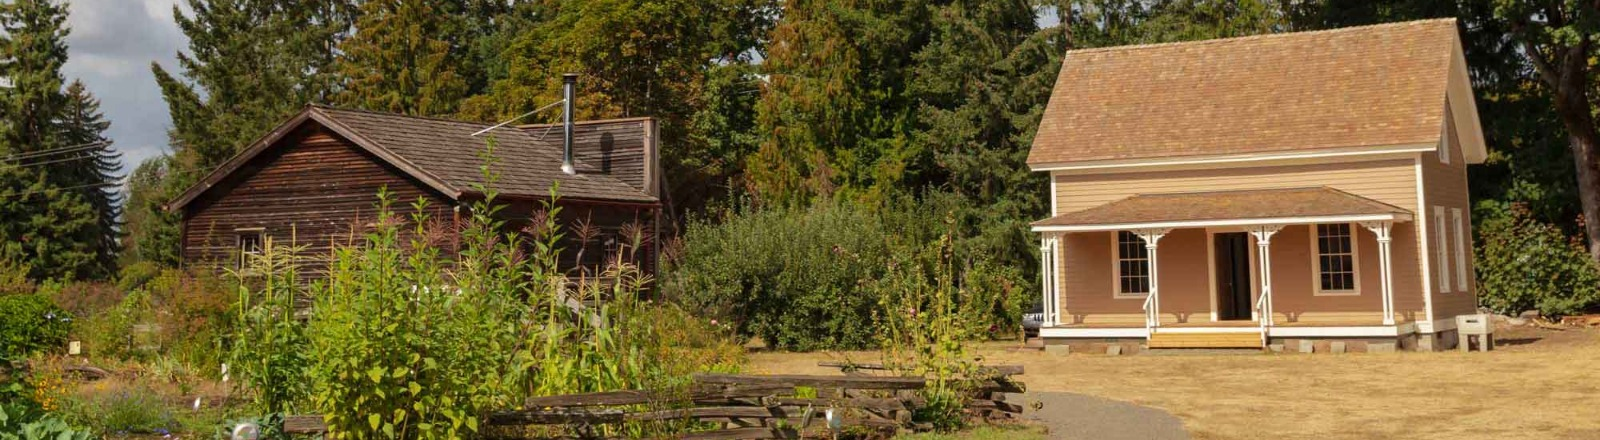 Lucy's cabin at Philip Foster Farm in Oregon's Mount Hood Territory